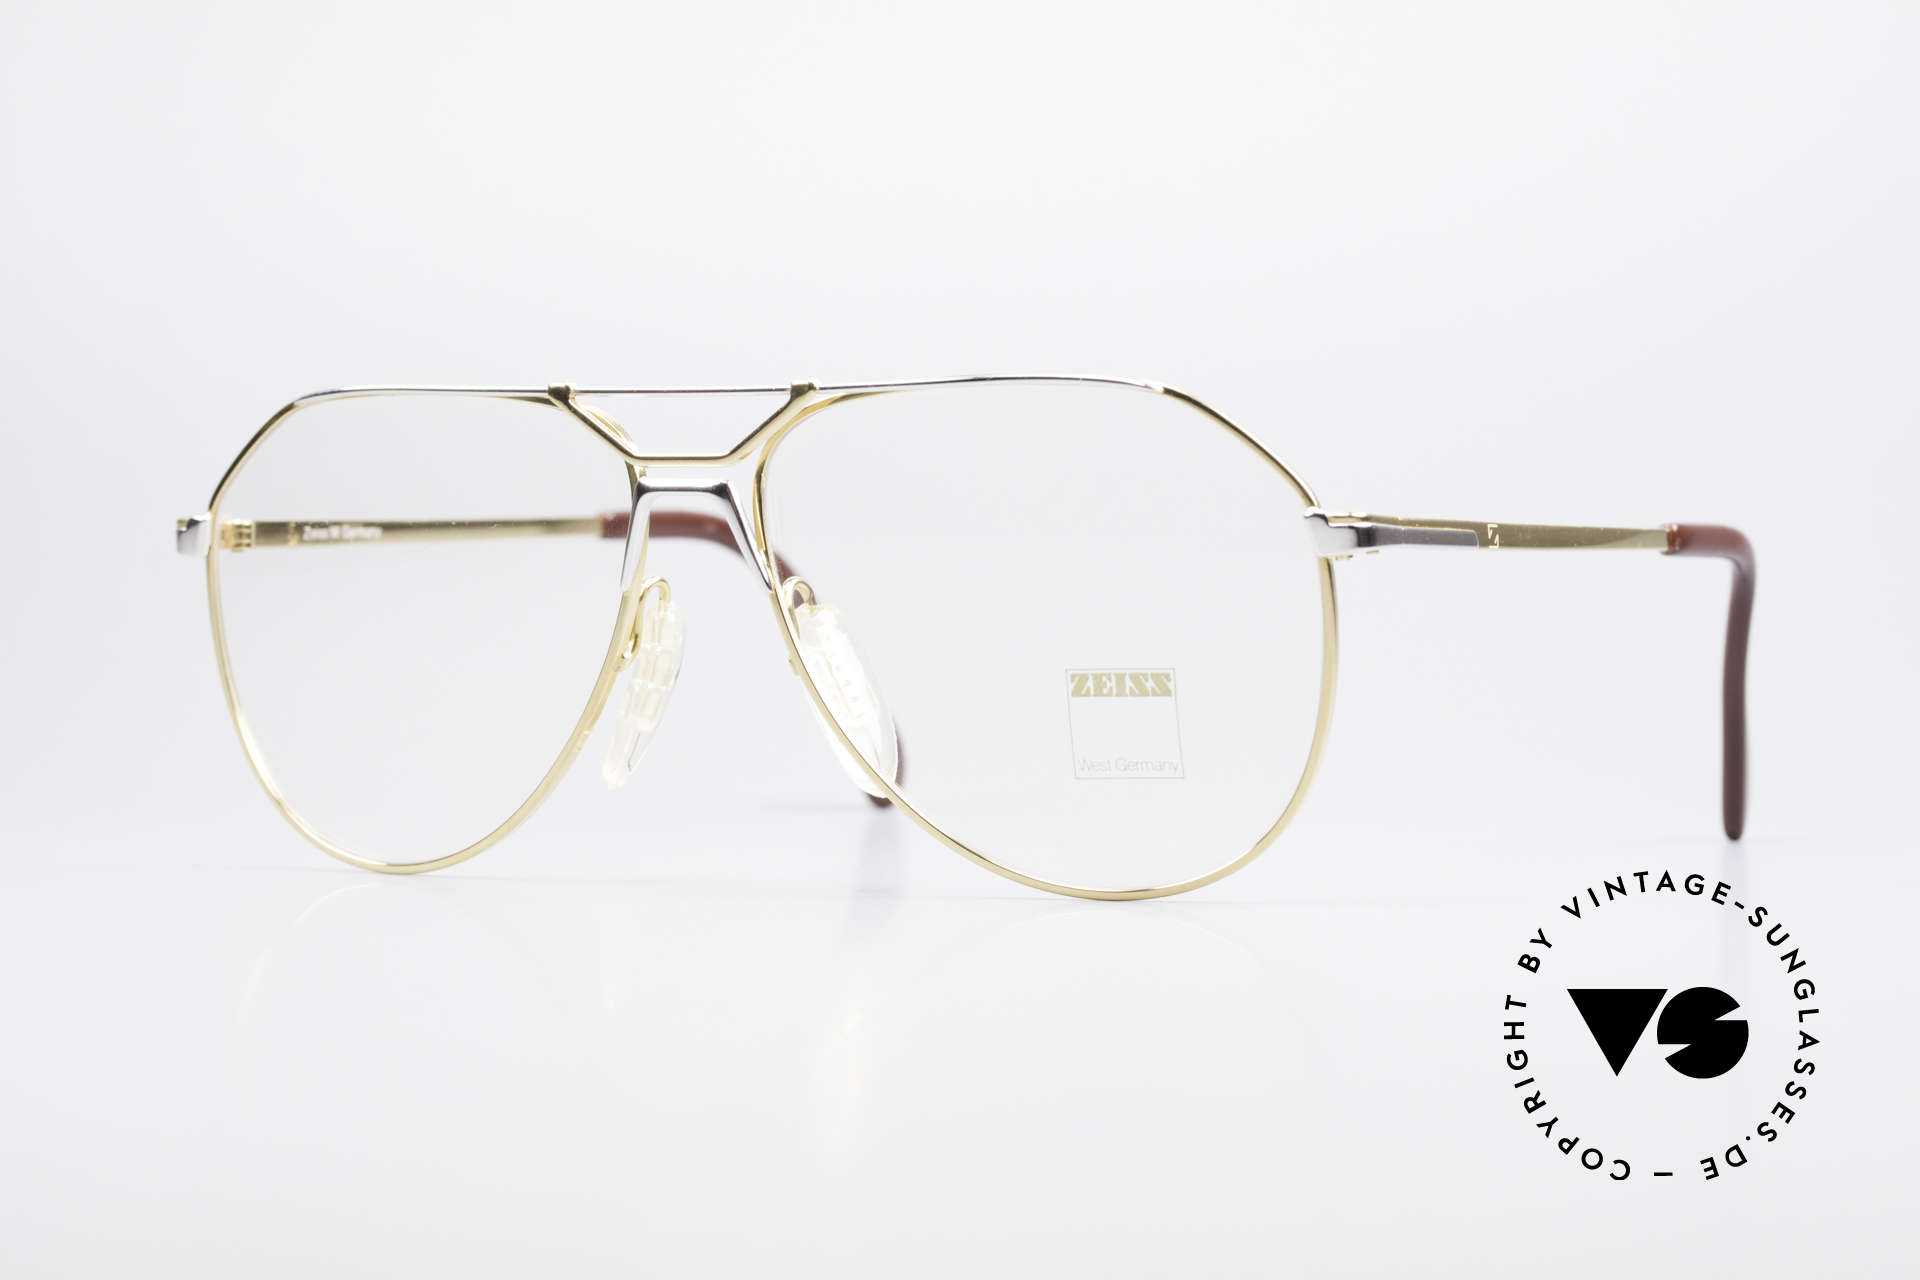 Zeiss 5897 West Germany 80's Eye Frame, very sturdy vintage eyeglasses by Zeiss from app. 1981, Made for Men